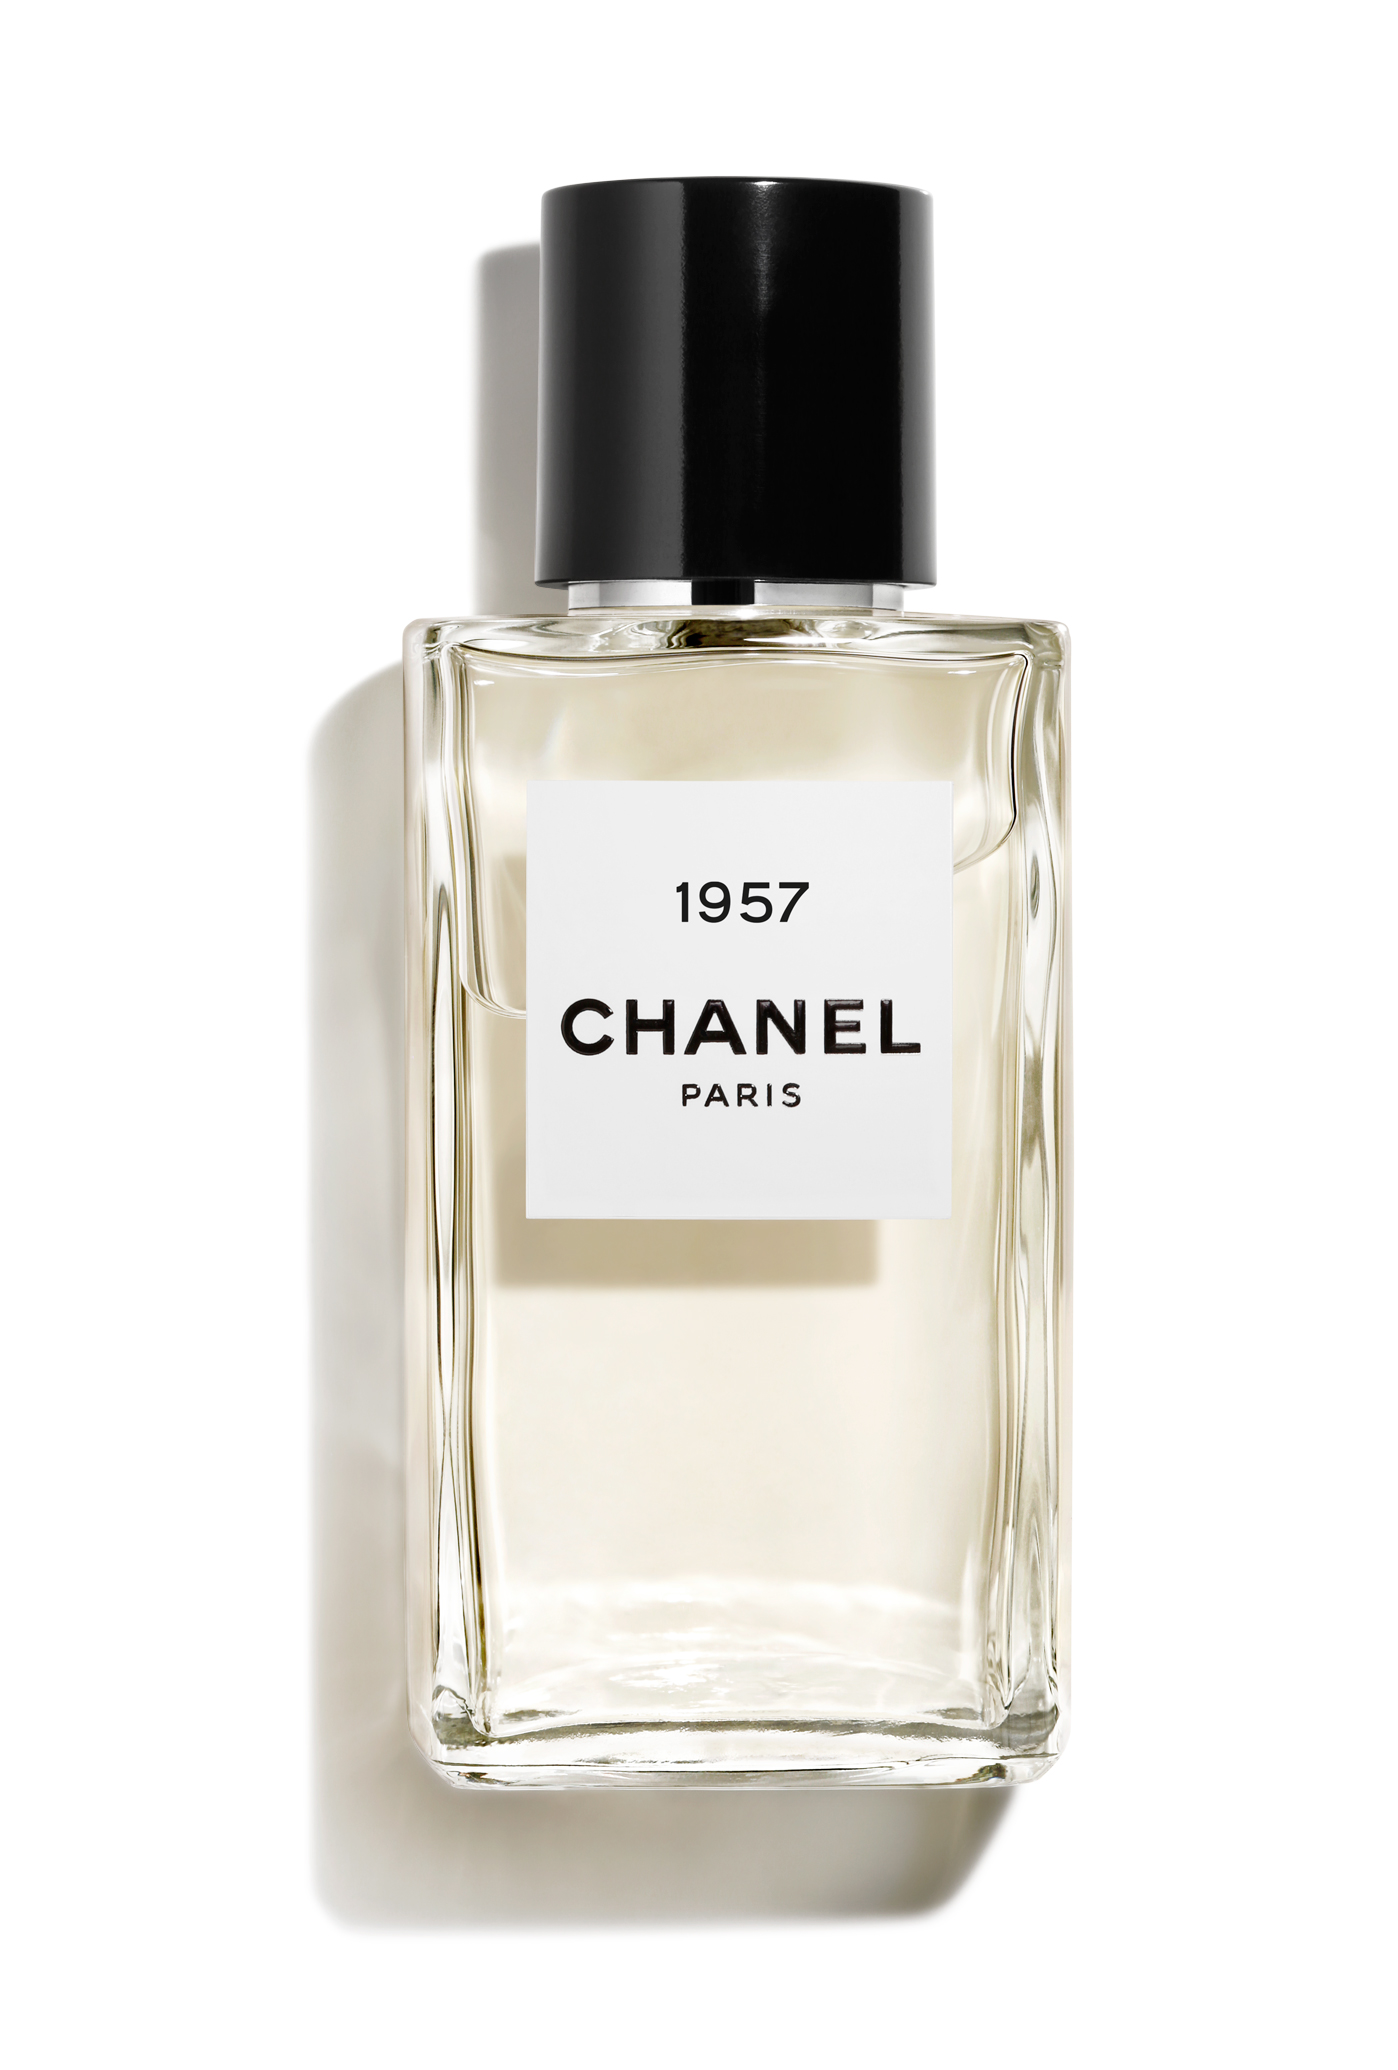 Chanel 1957 Chanel Perfume A New Fragrance For Women And Men 2019